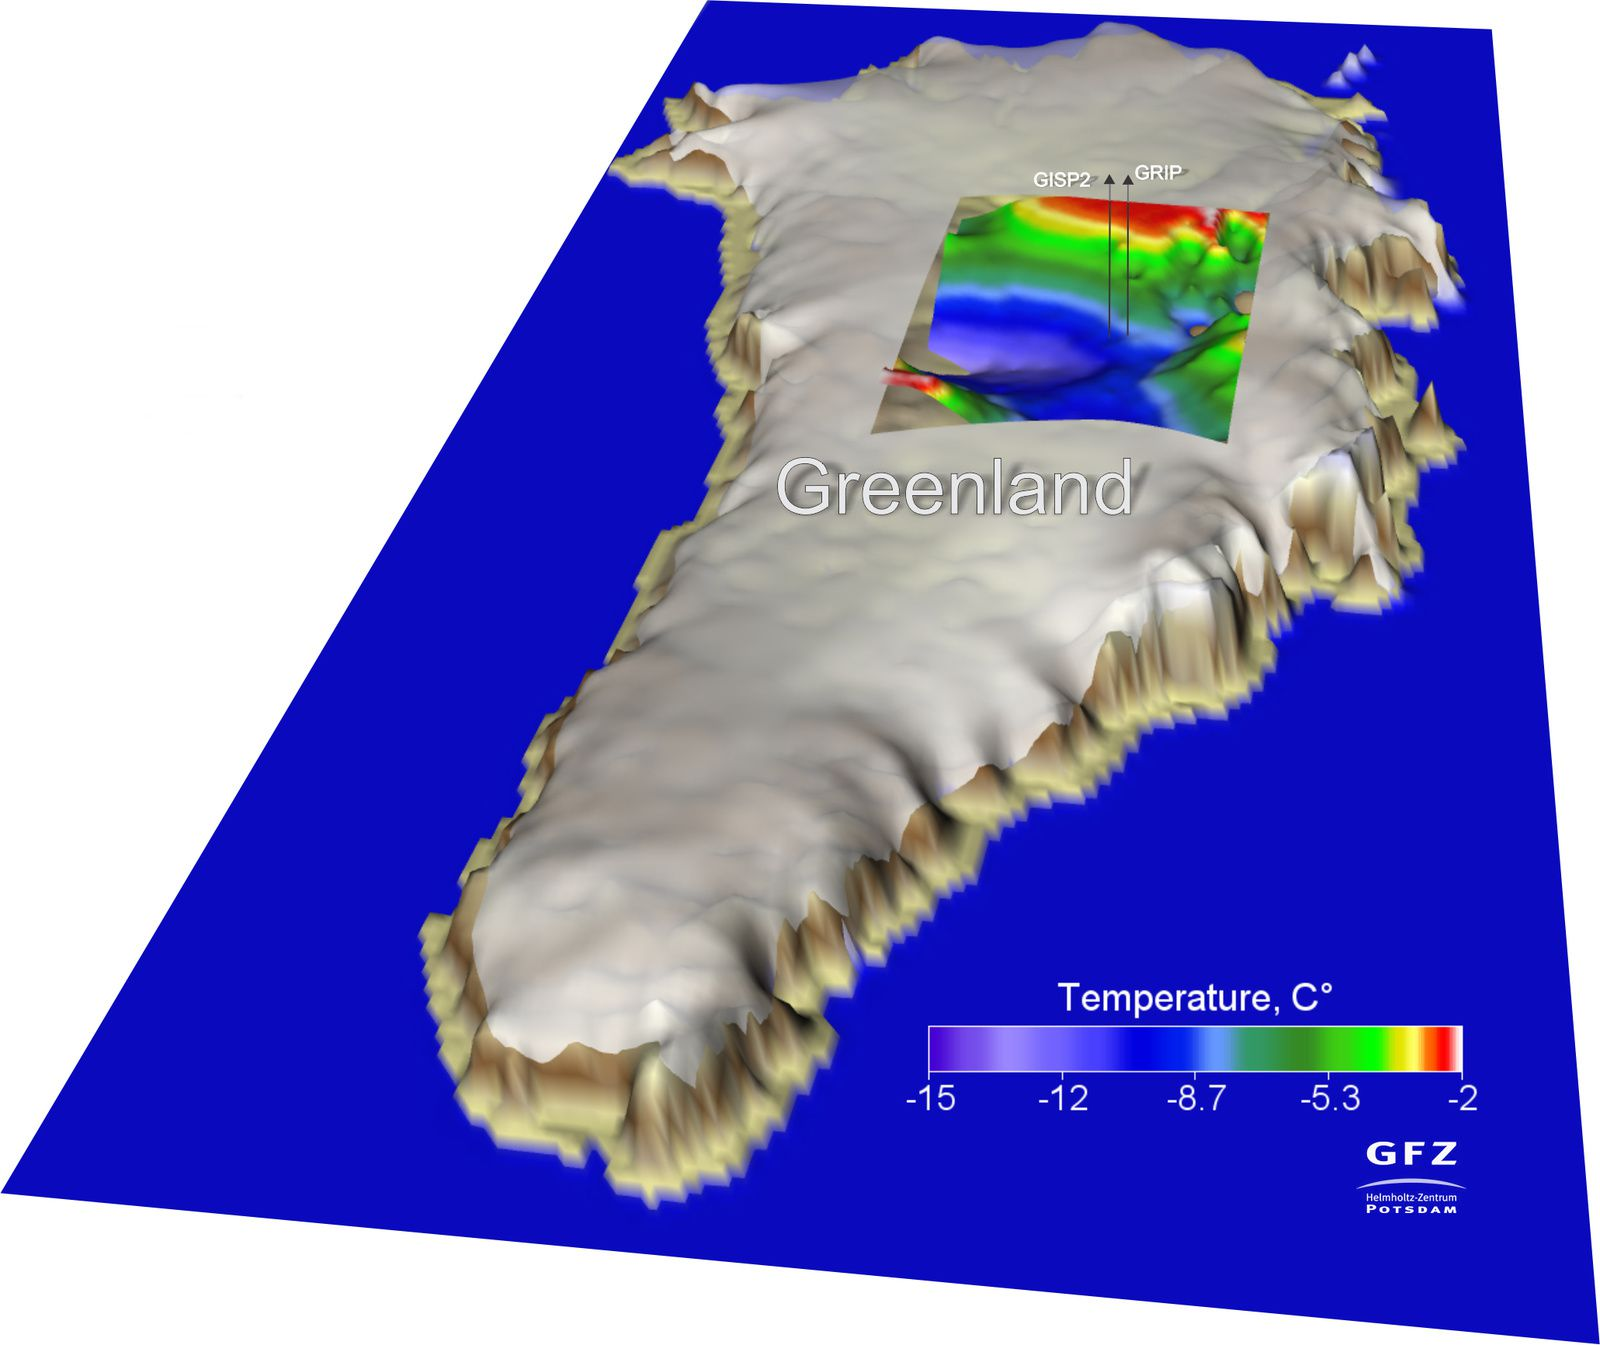 Basal model of temperatures of ice on the ice cap covering the summit region of Greenland - GRIP & GISP2 indicates drilling locations - Doc. A.Petrunin / GFZ